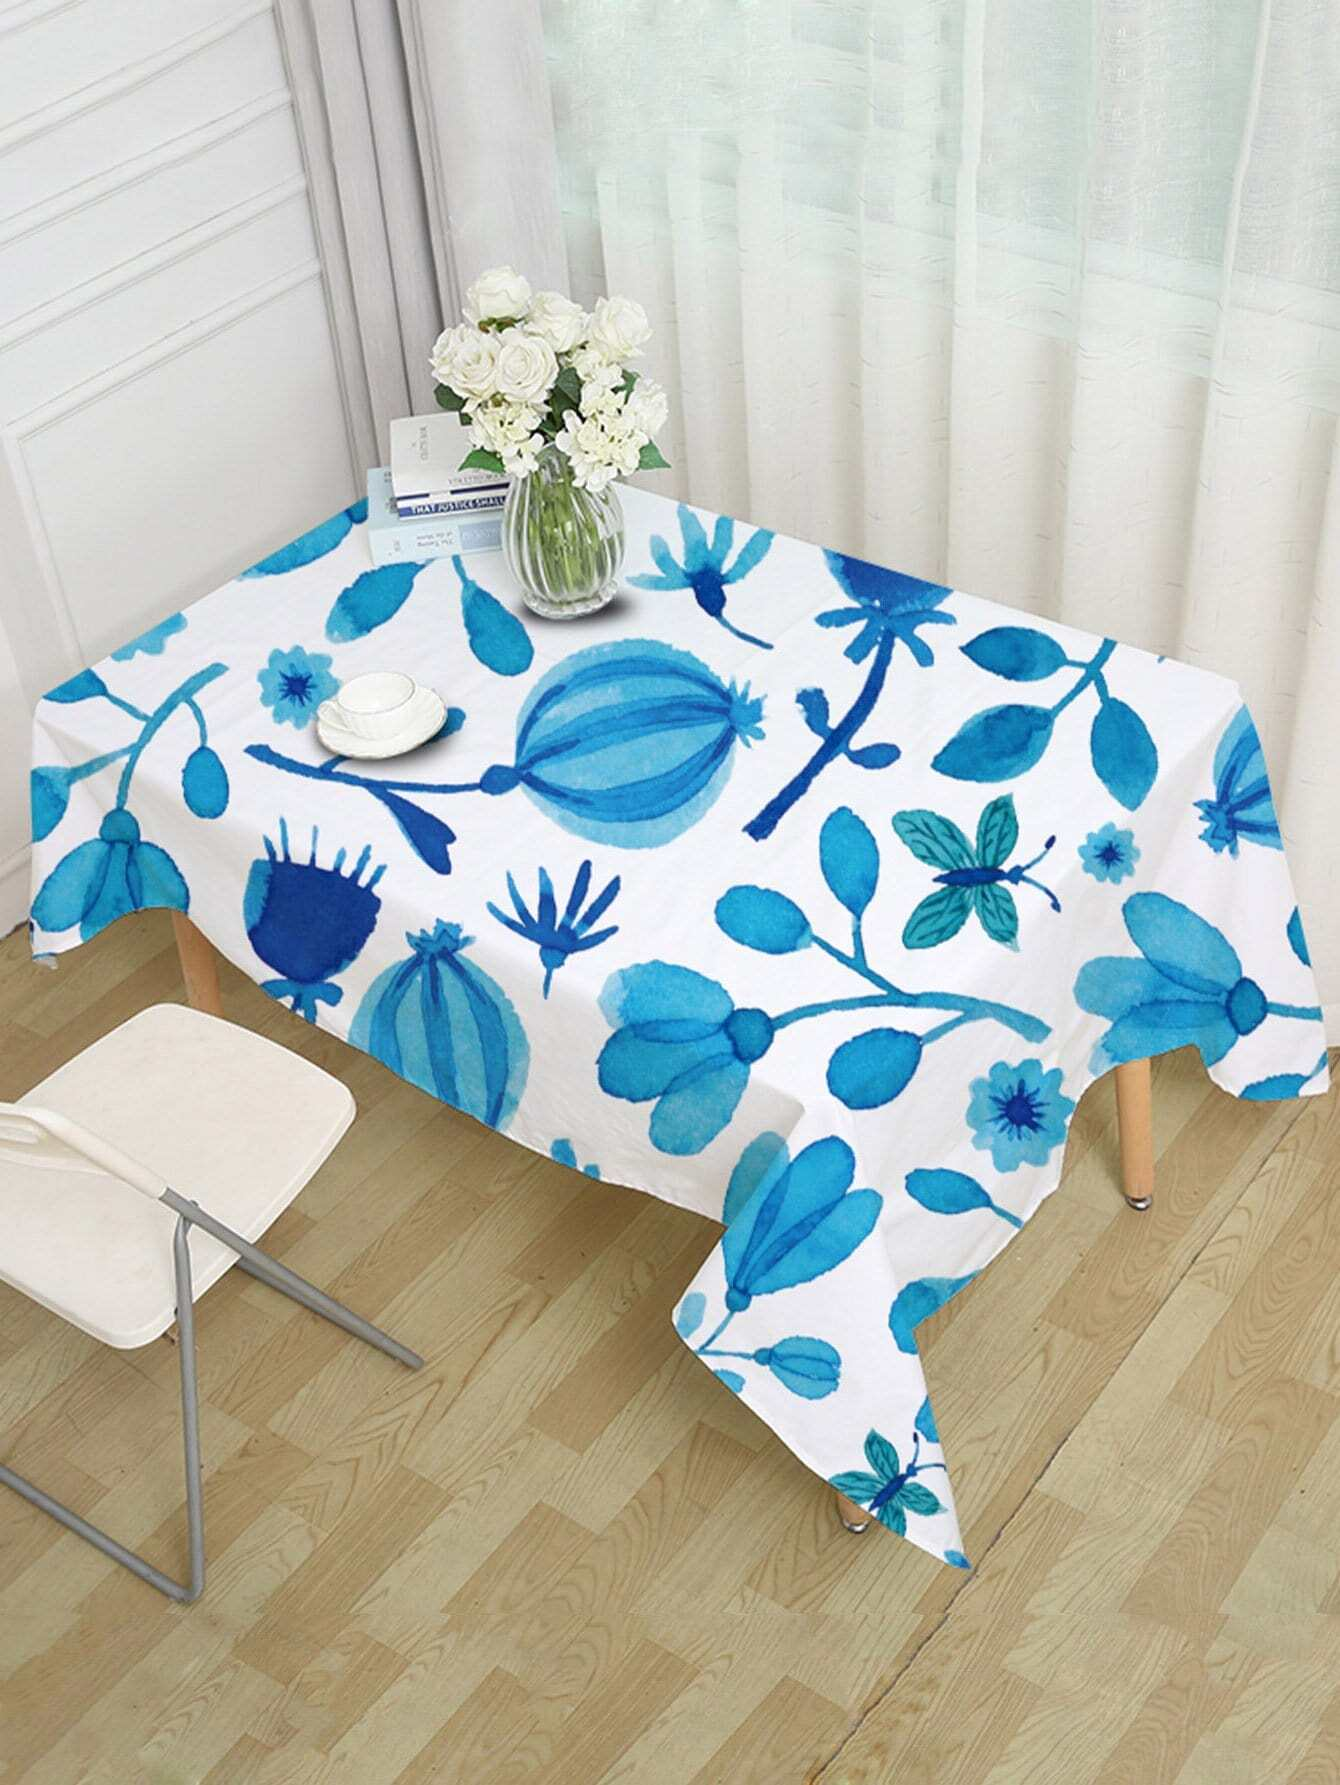 Floral & Butterfly Print Table Cloth